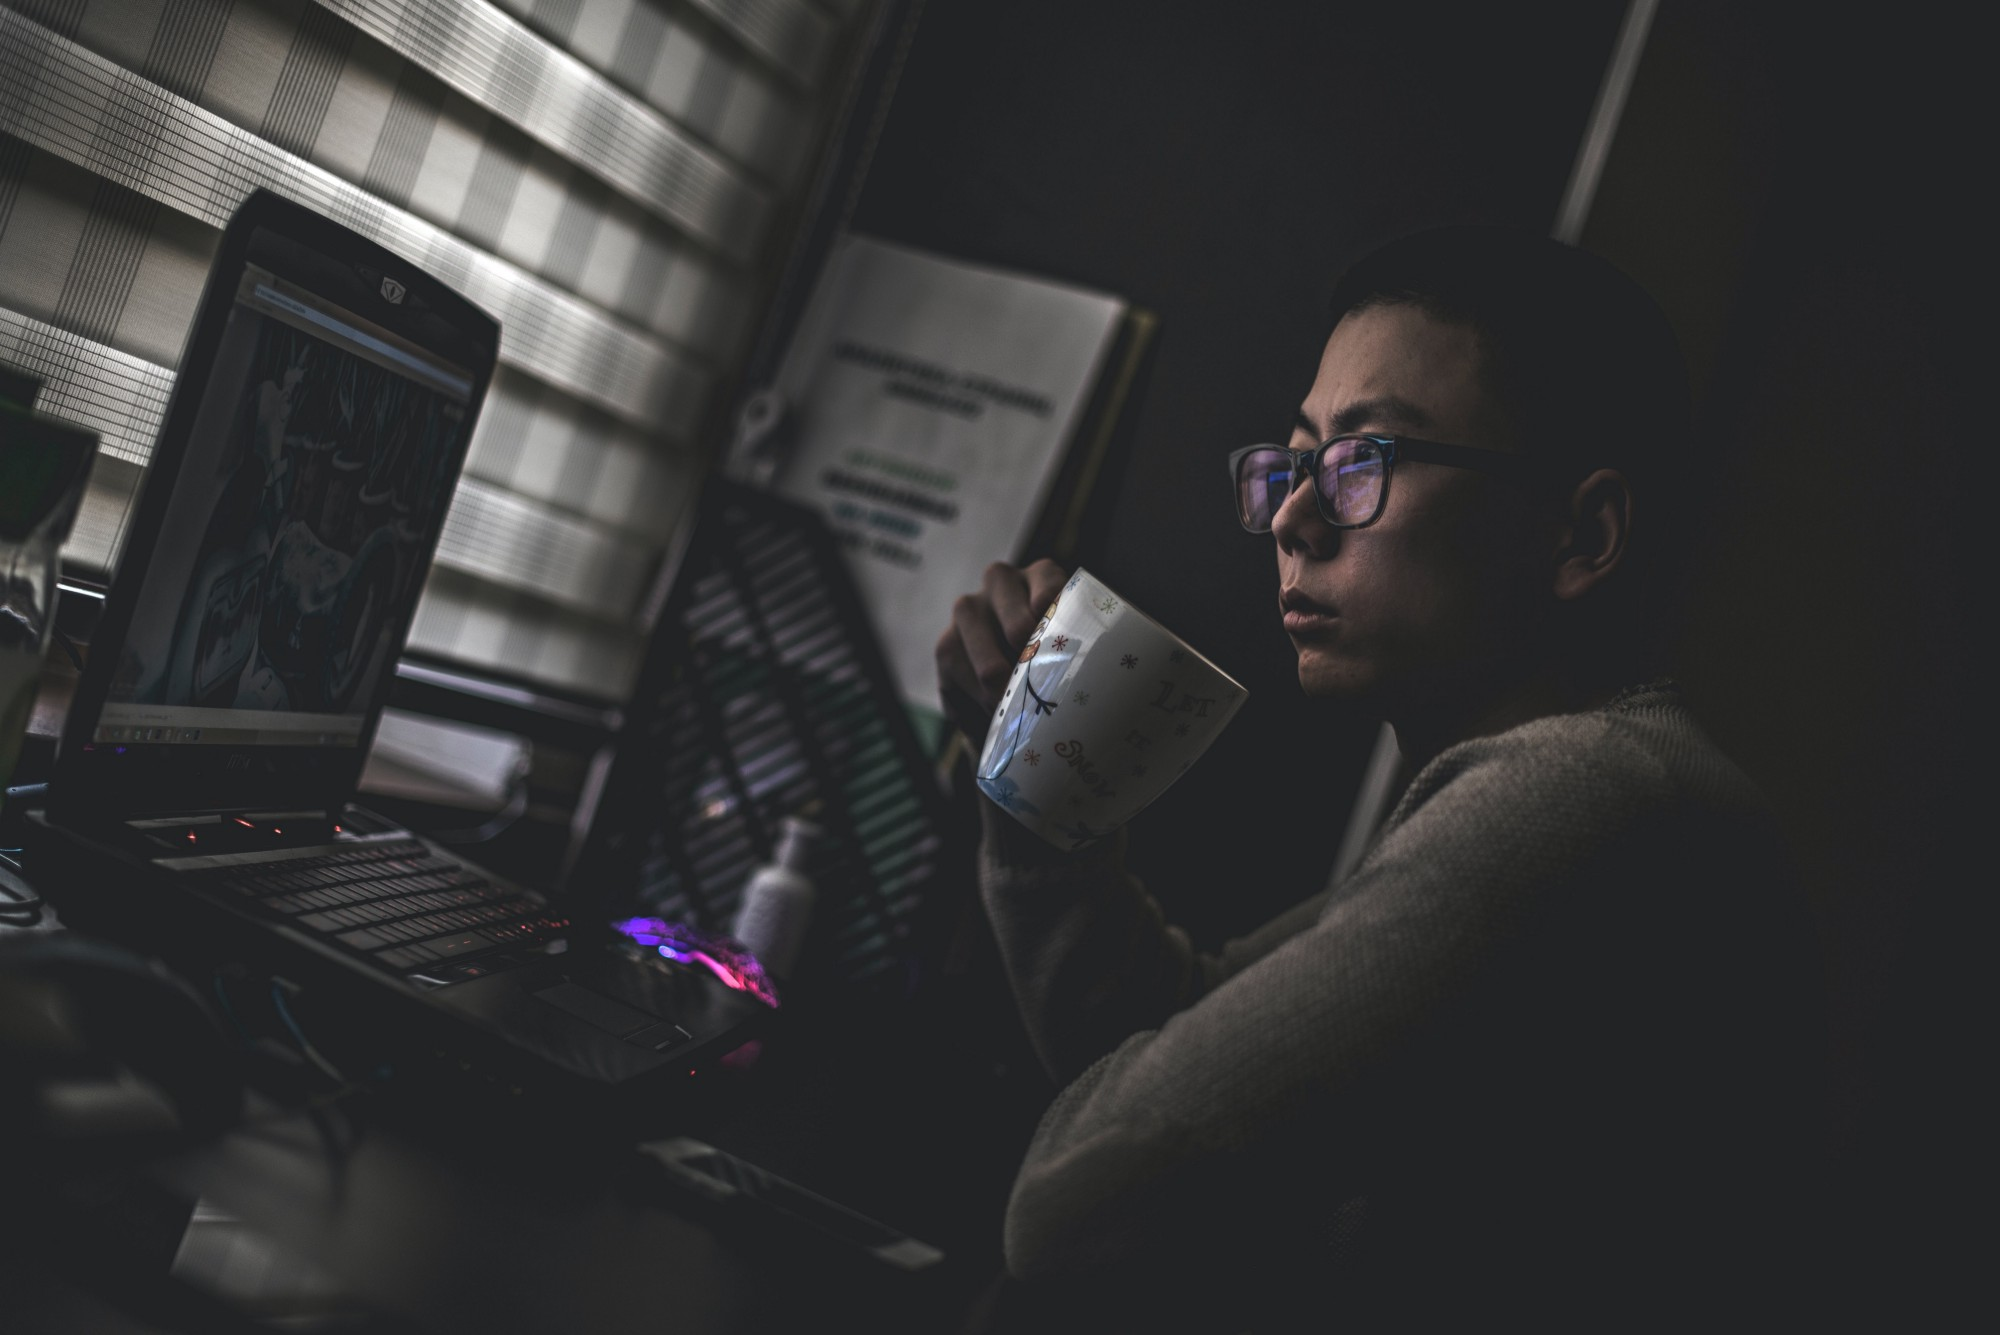 Person holding mug while looking at laptop